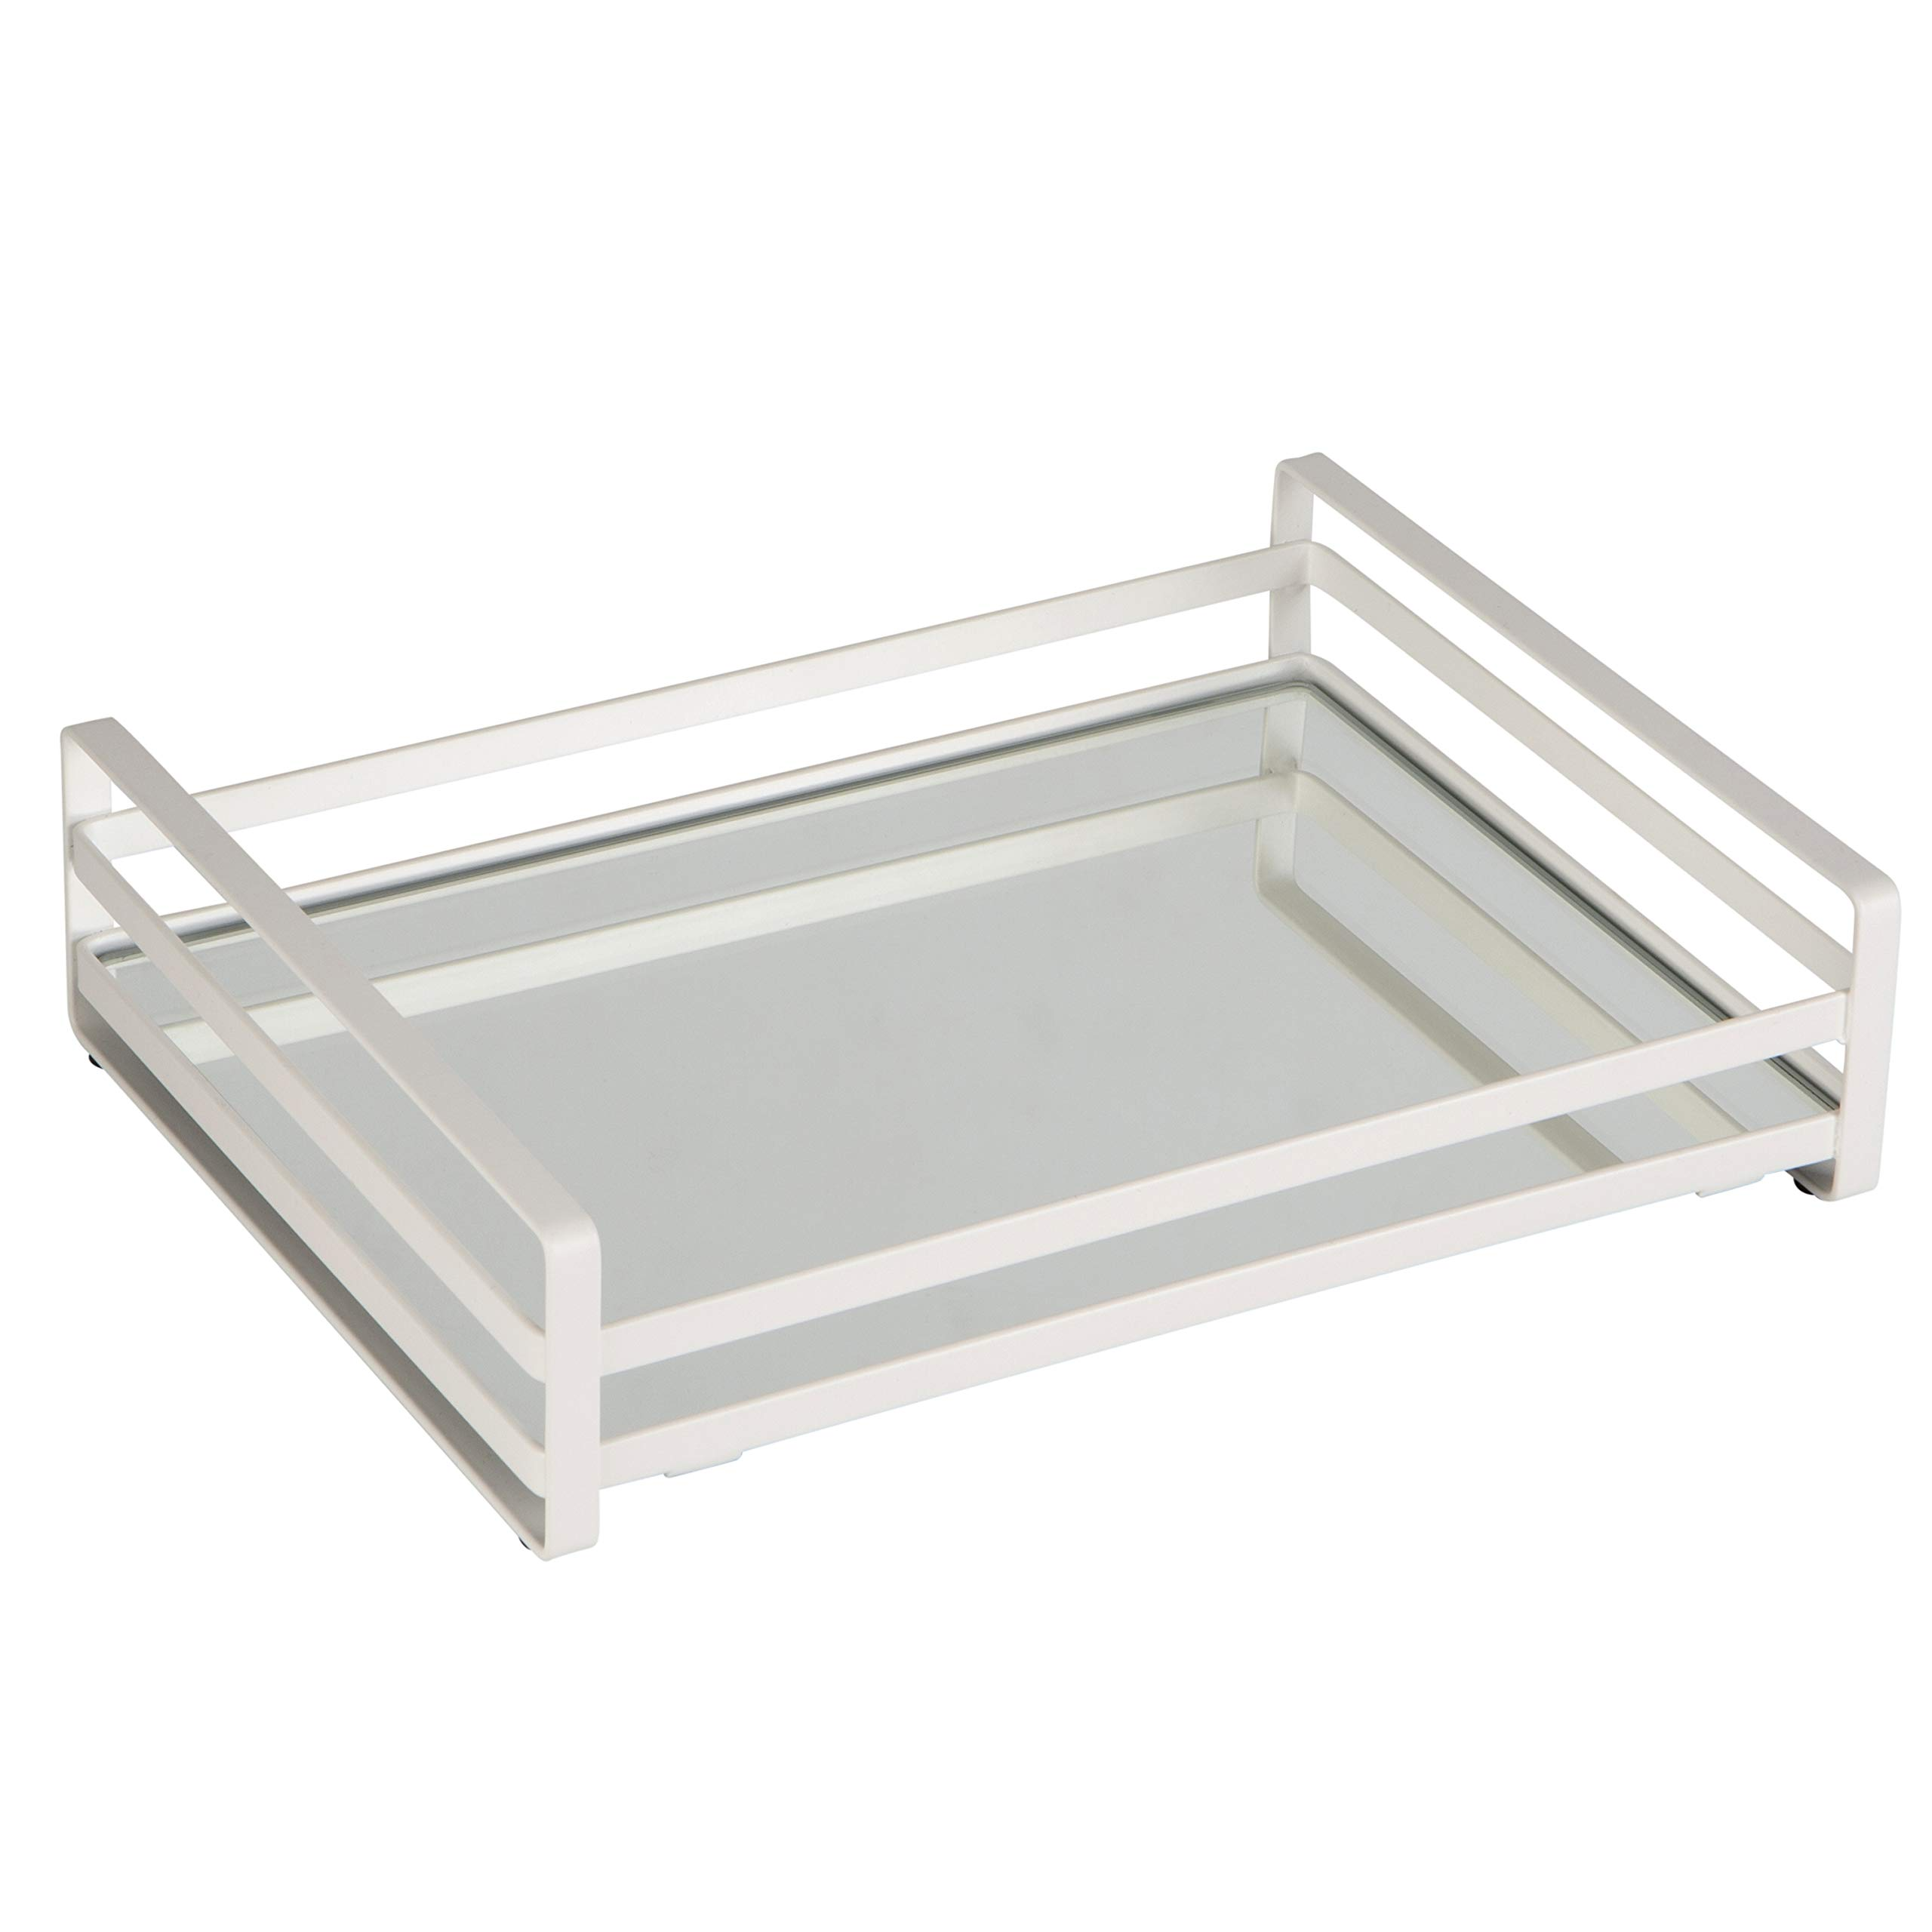 Home Details Flat Wired Rails Large Vanity Tray, Silver